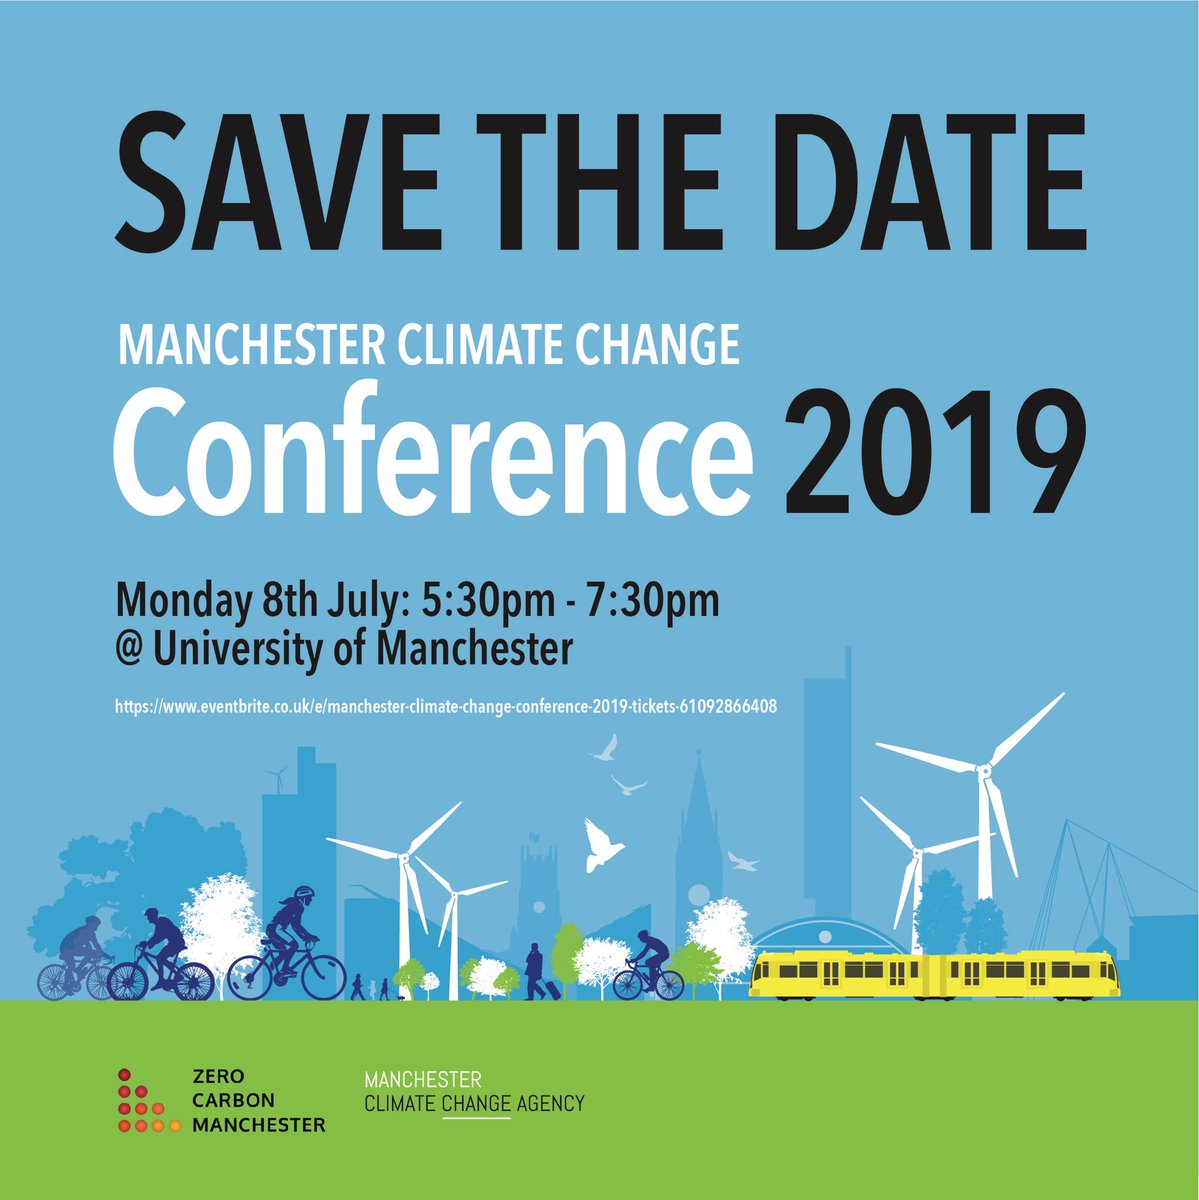 Manchester Climate Change Conference 2019